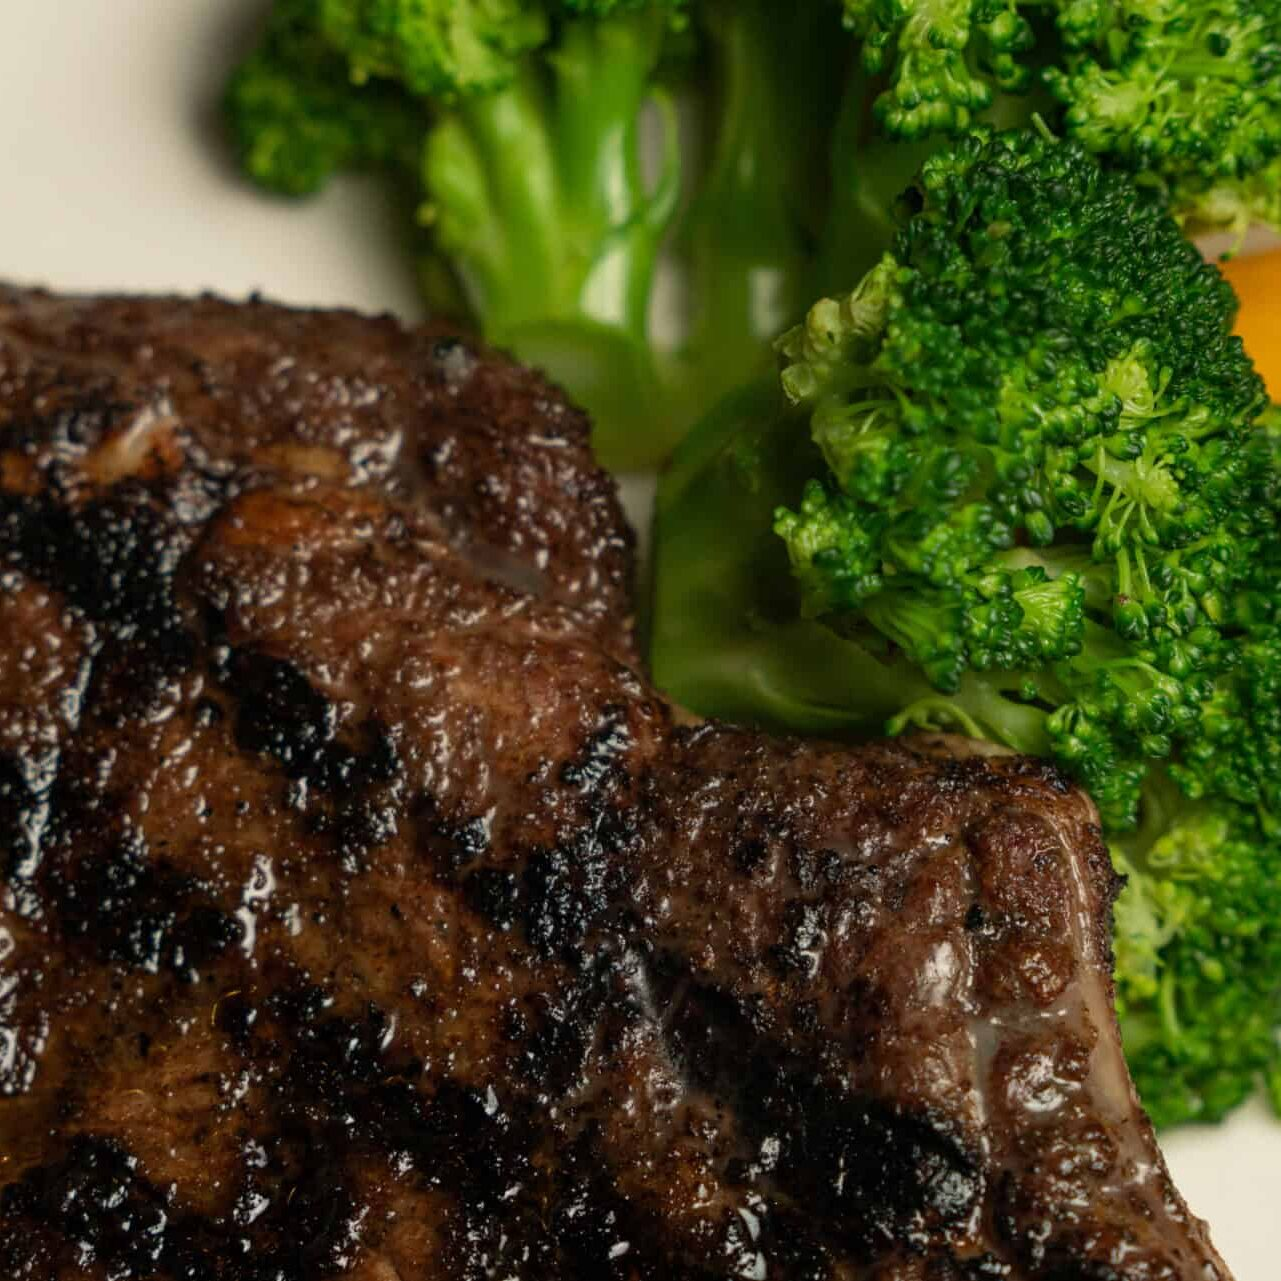 Juicy steak with gill marks and a fresh green broccoli side